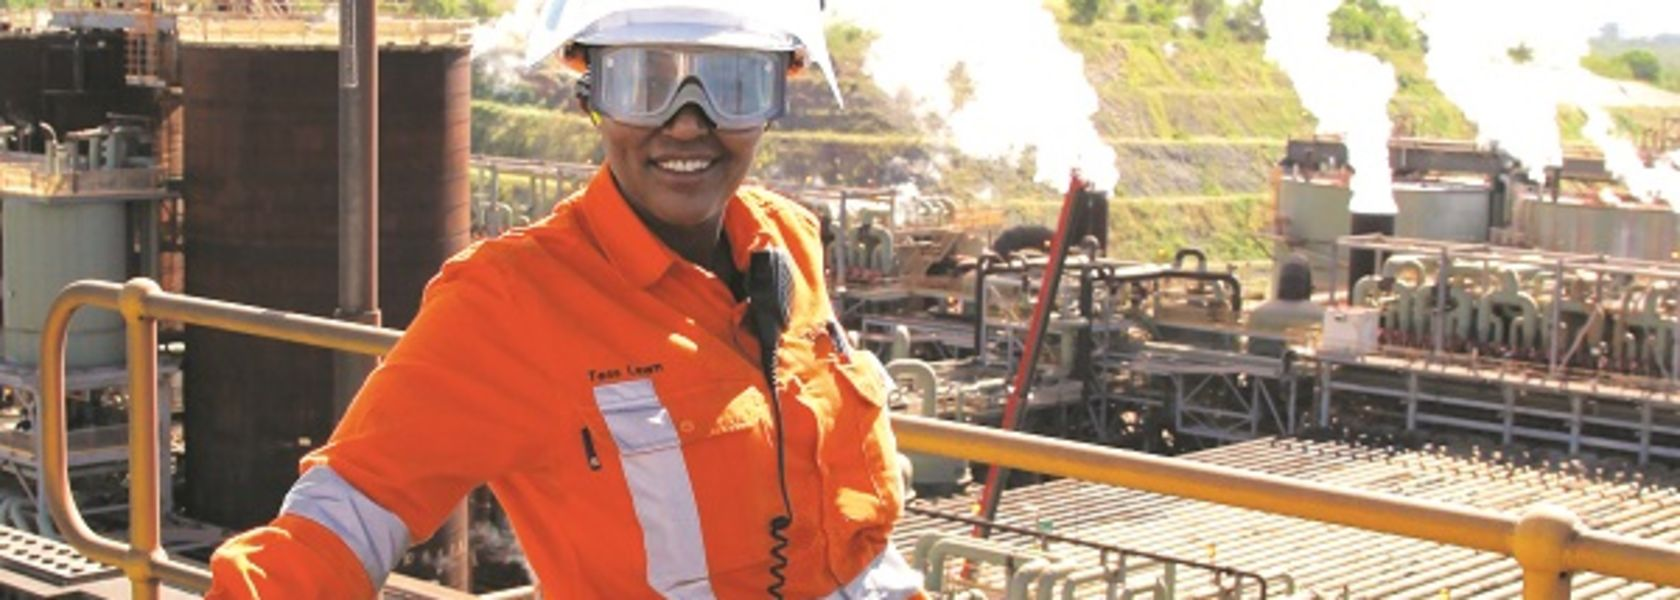 Rio Tinto's Yarwun refinery recruiting for local candidates